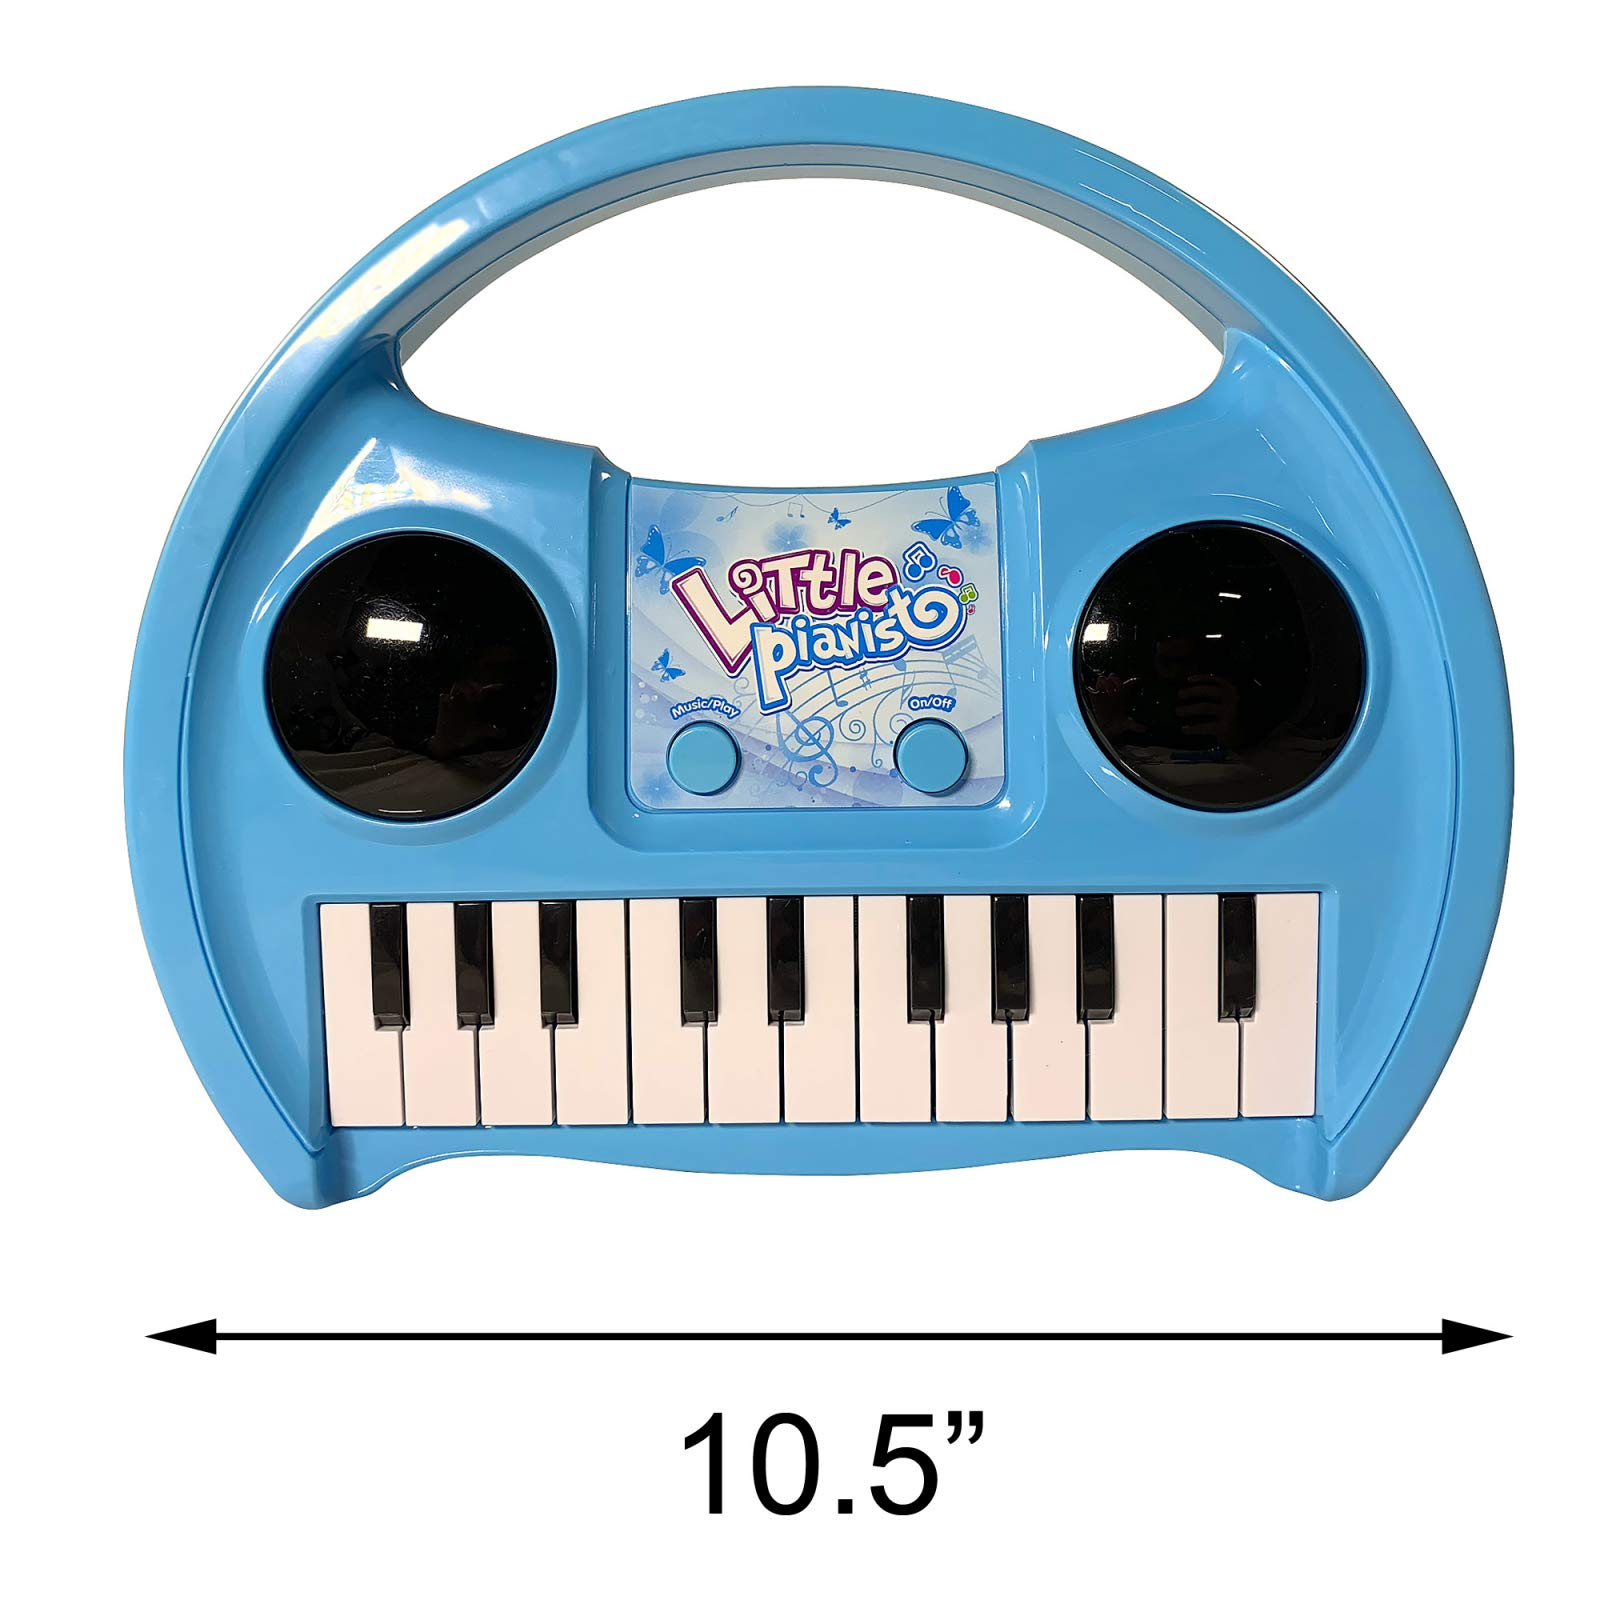 KidPlay Products Little Pianist Singing Musical Karaoke Lights Up Keyboard by KidPlay Products (Image #4)